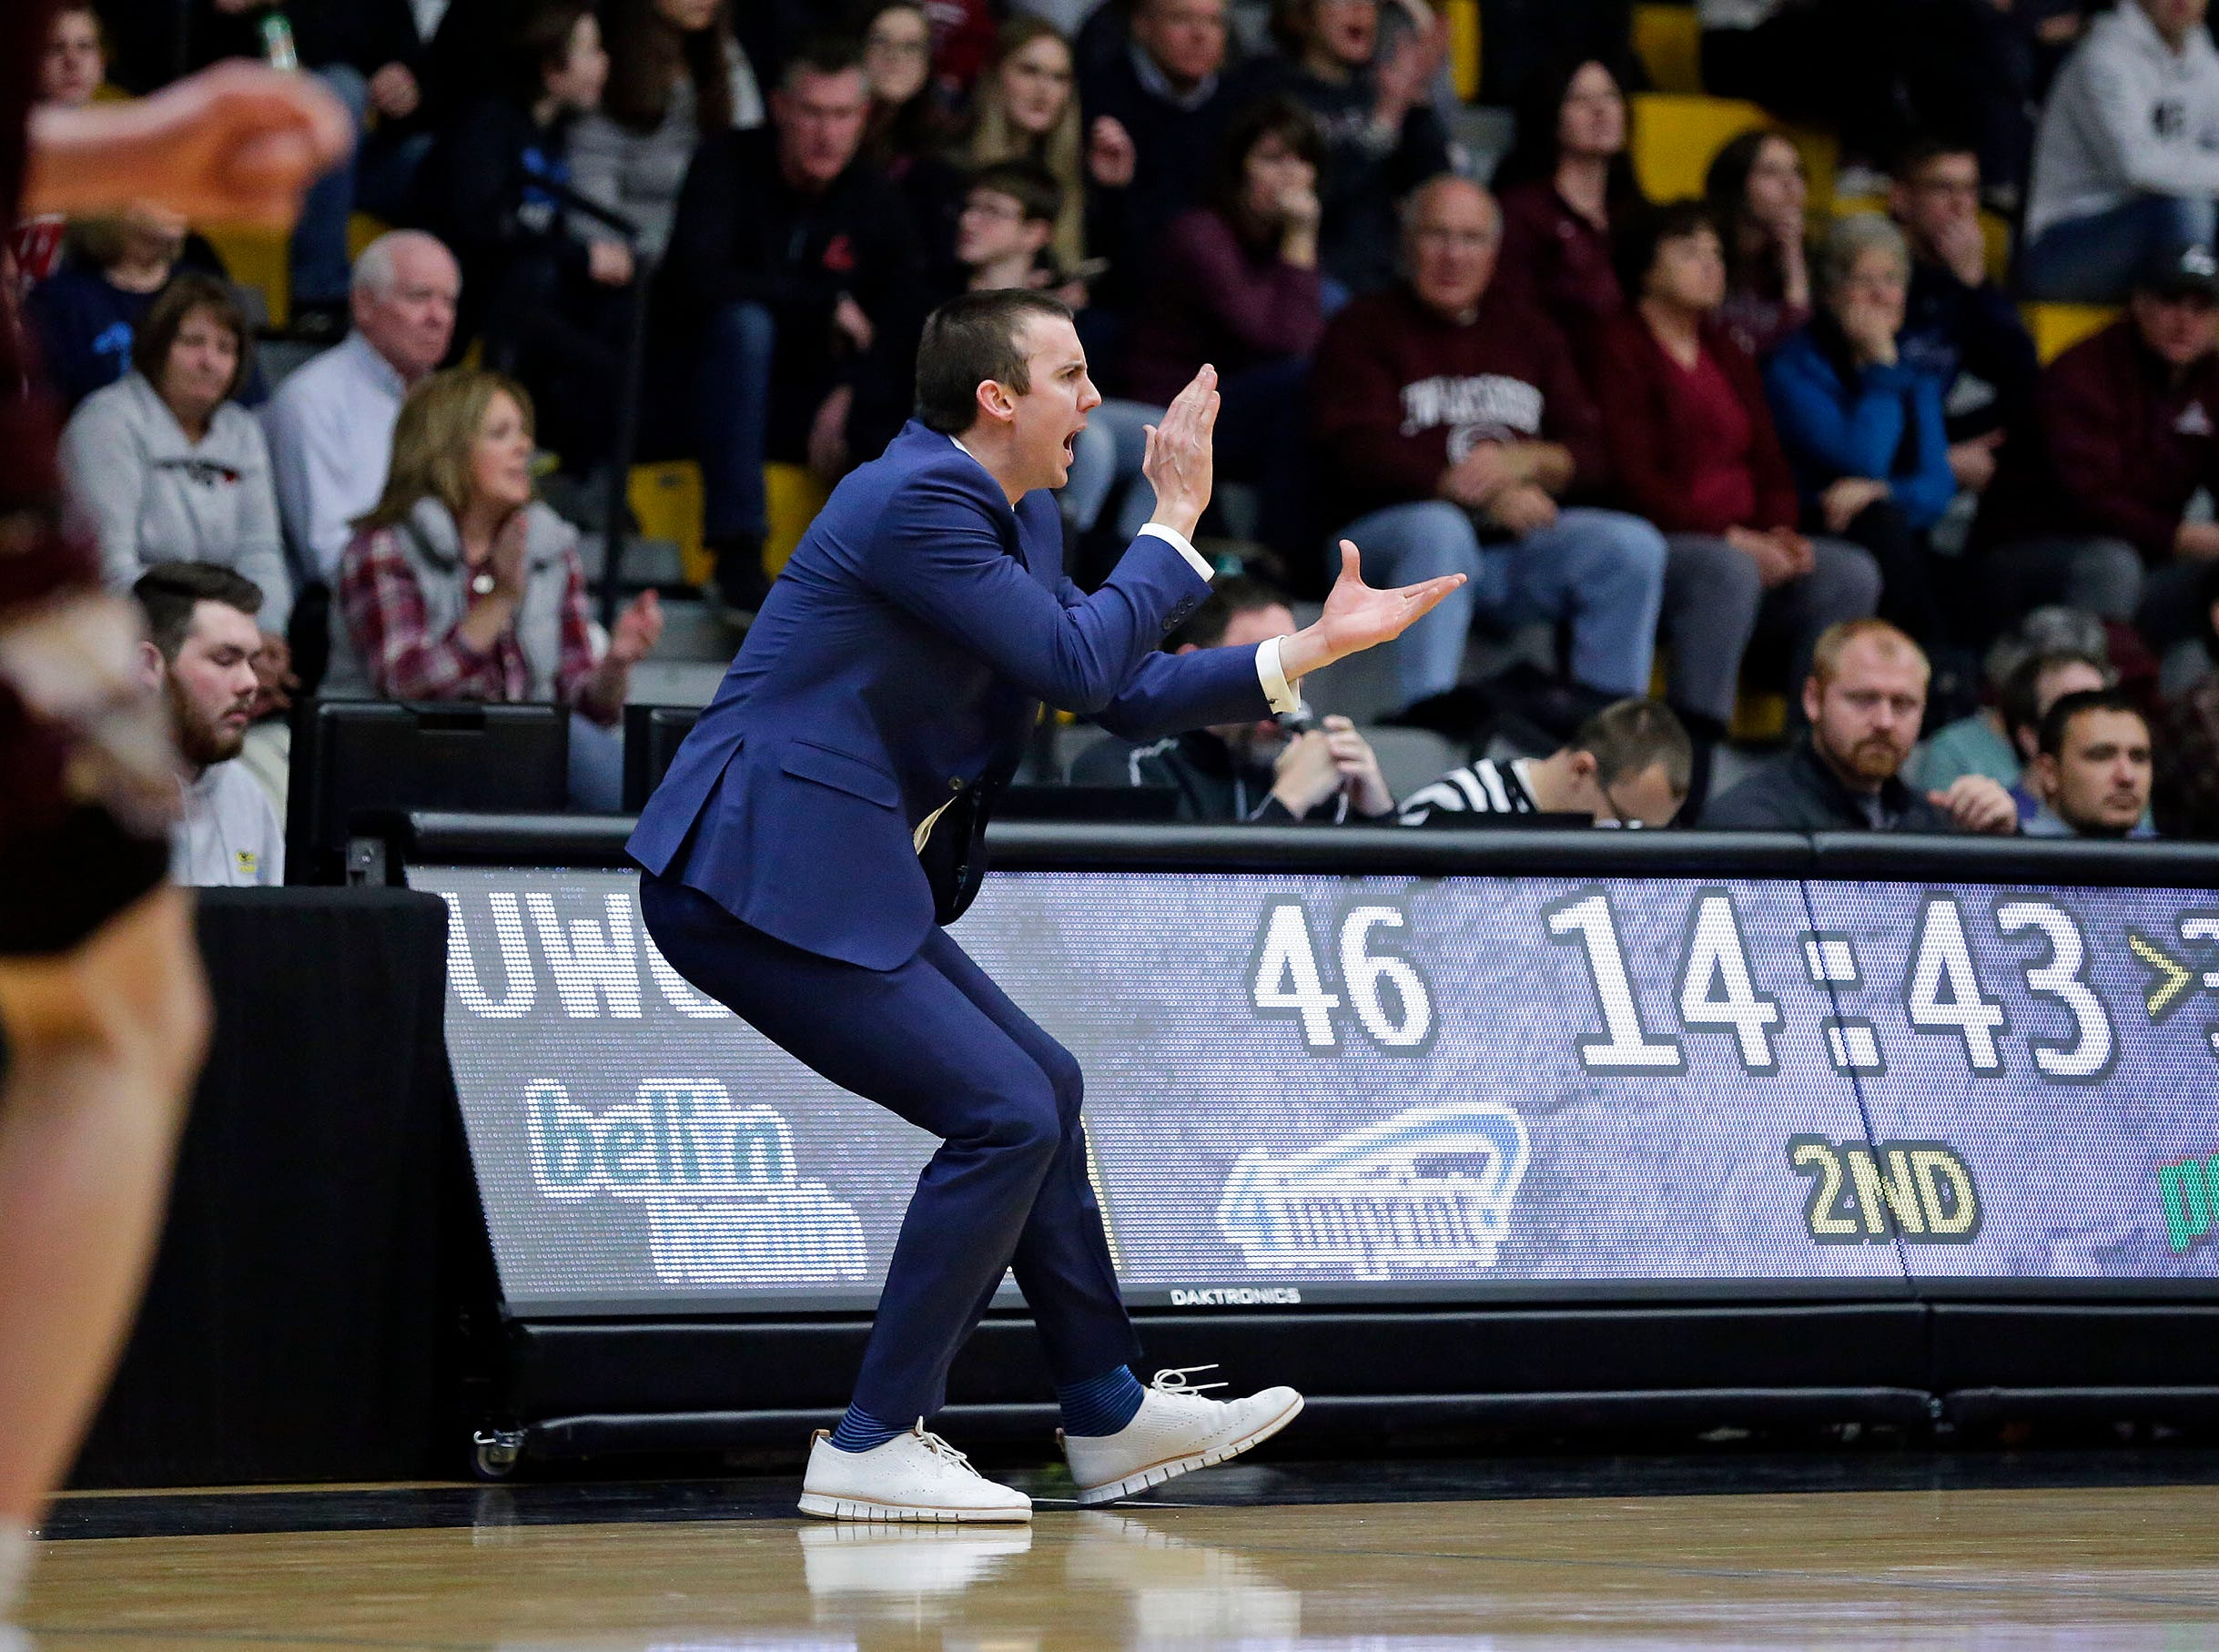 Interim head coach Matt Lewis of UW-Oshkosh talks to his team as they take on UW-La Crosse in Wisconsin Intercollegiate Athletic Conference basketball Saturday, January 19, 2019, at Kolf Sports Center in Oshkosh, Wis. 